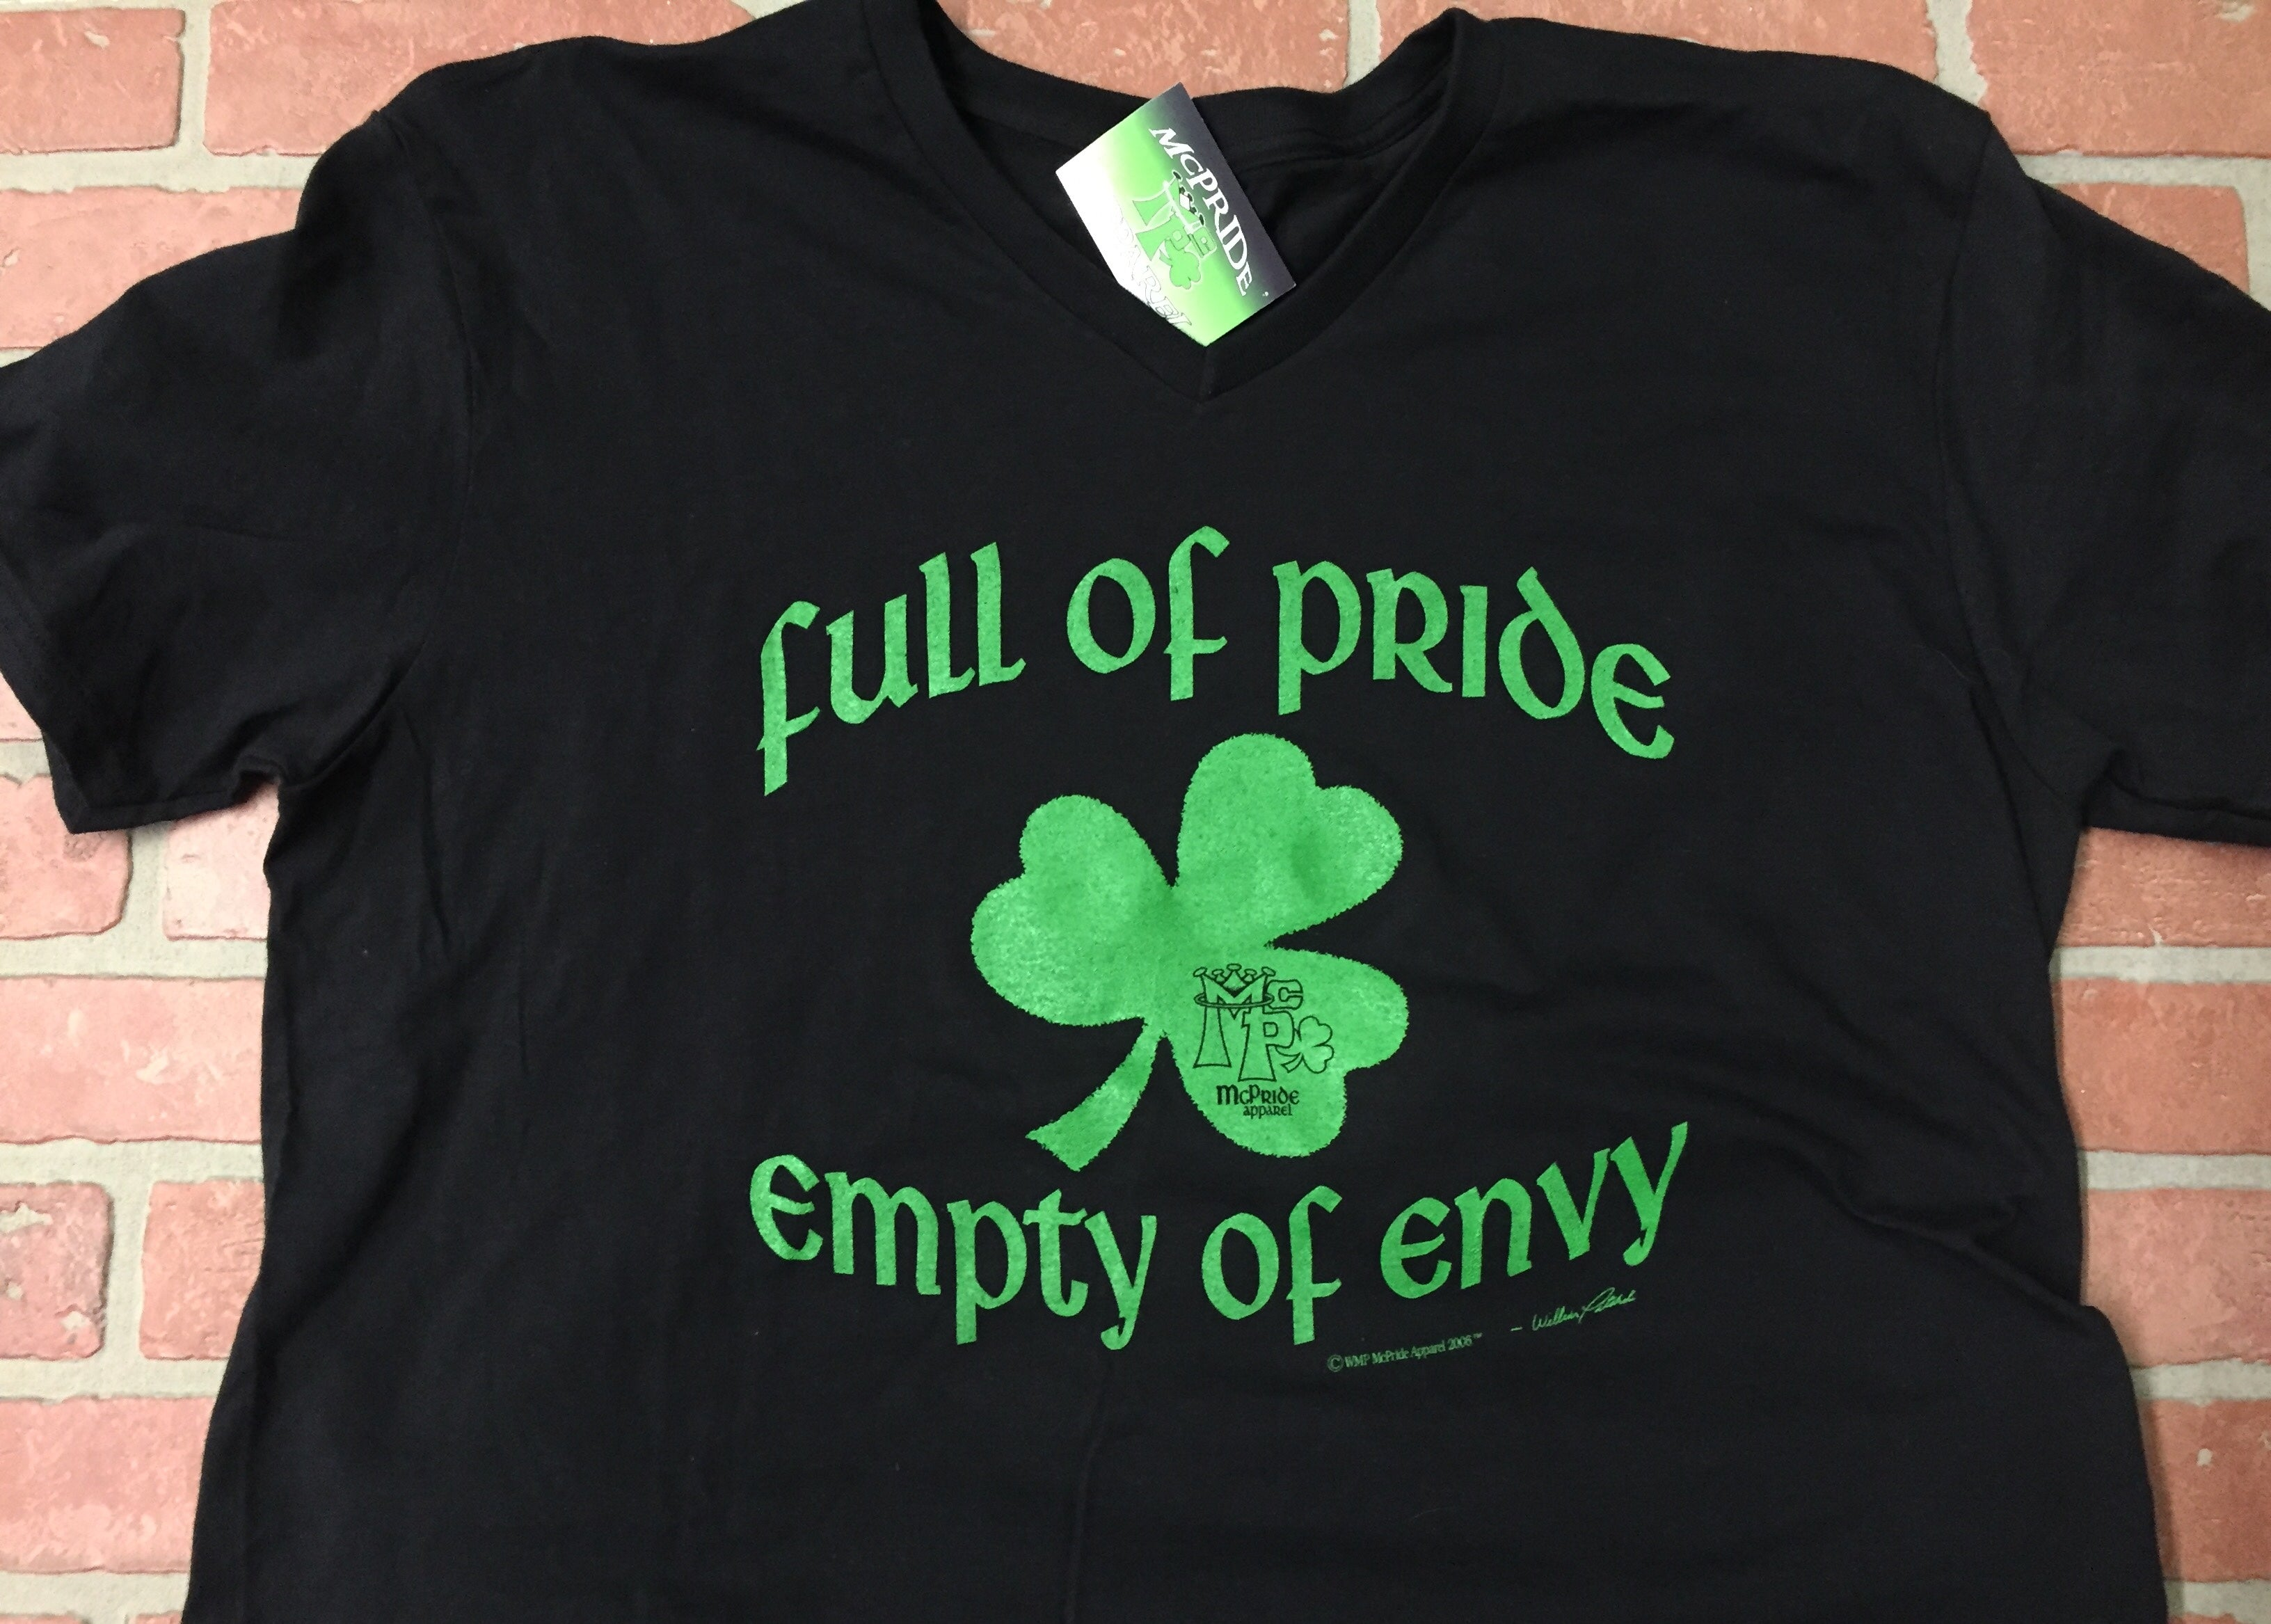 Full of pride,empty of envy. (Tee shirt)